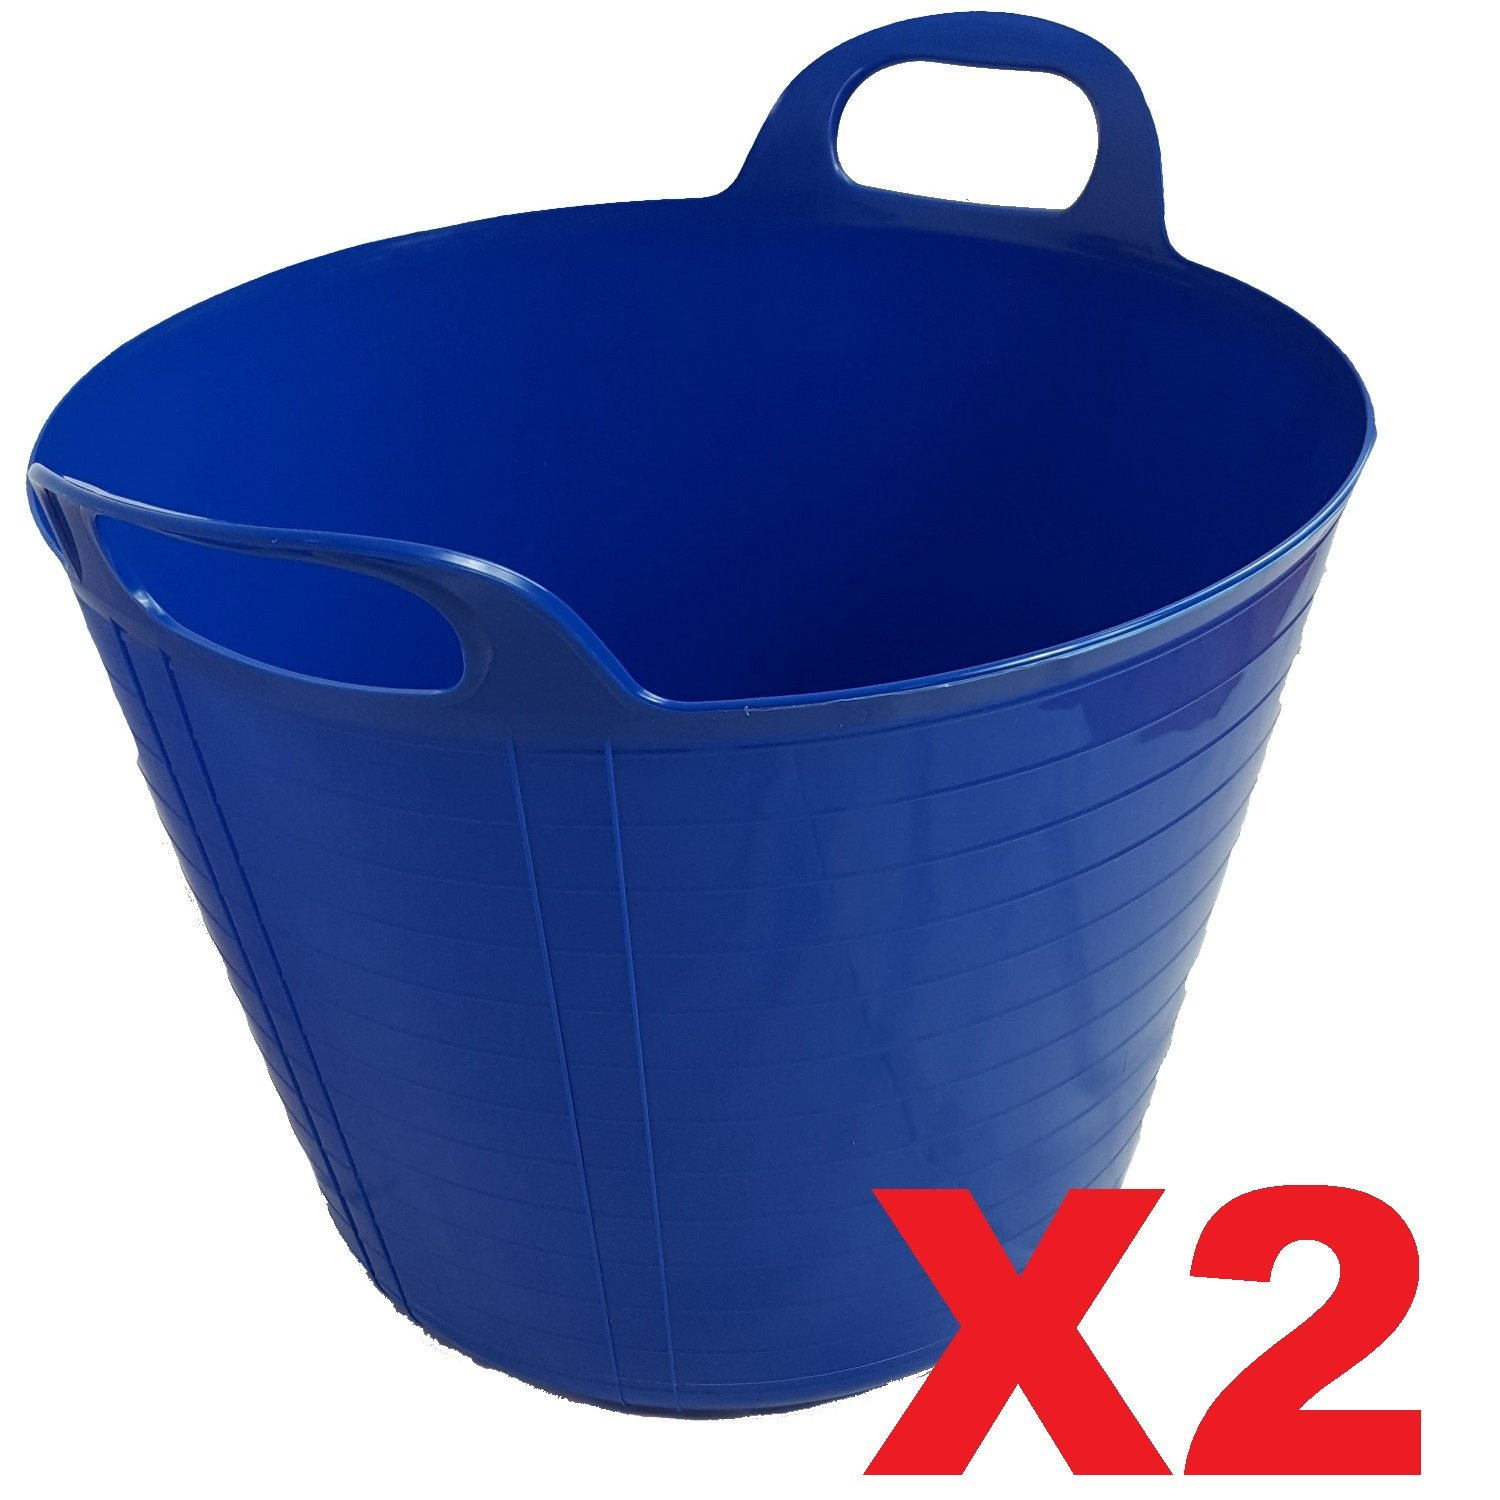 2 x BLUE 42 Litre Large Flexi Tub Garden Home Flexible Colour Rubber Storage Container Bucket Polyethylene Flex Tub - MADE IN U.K. UK